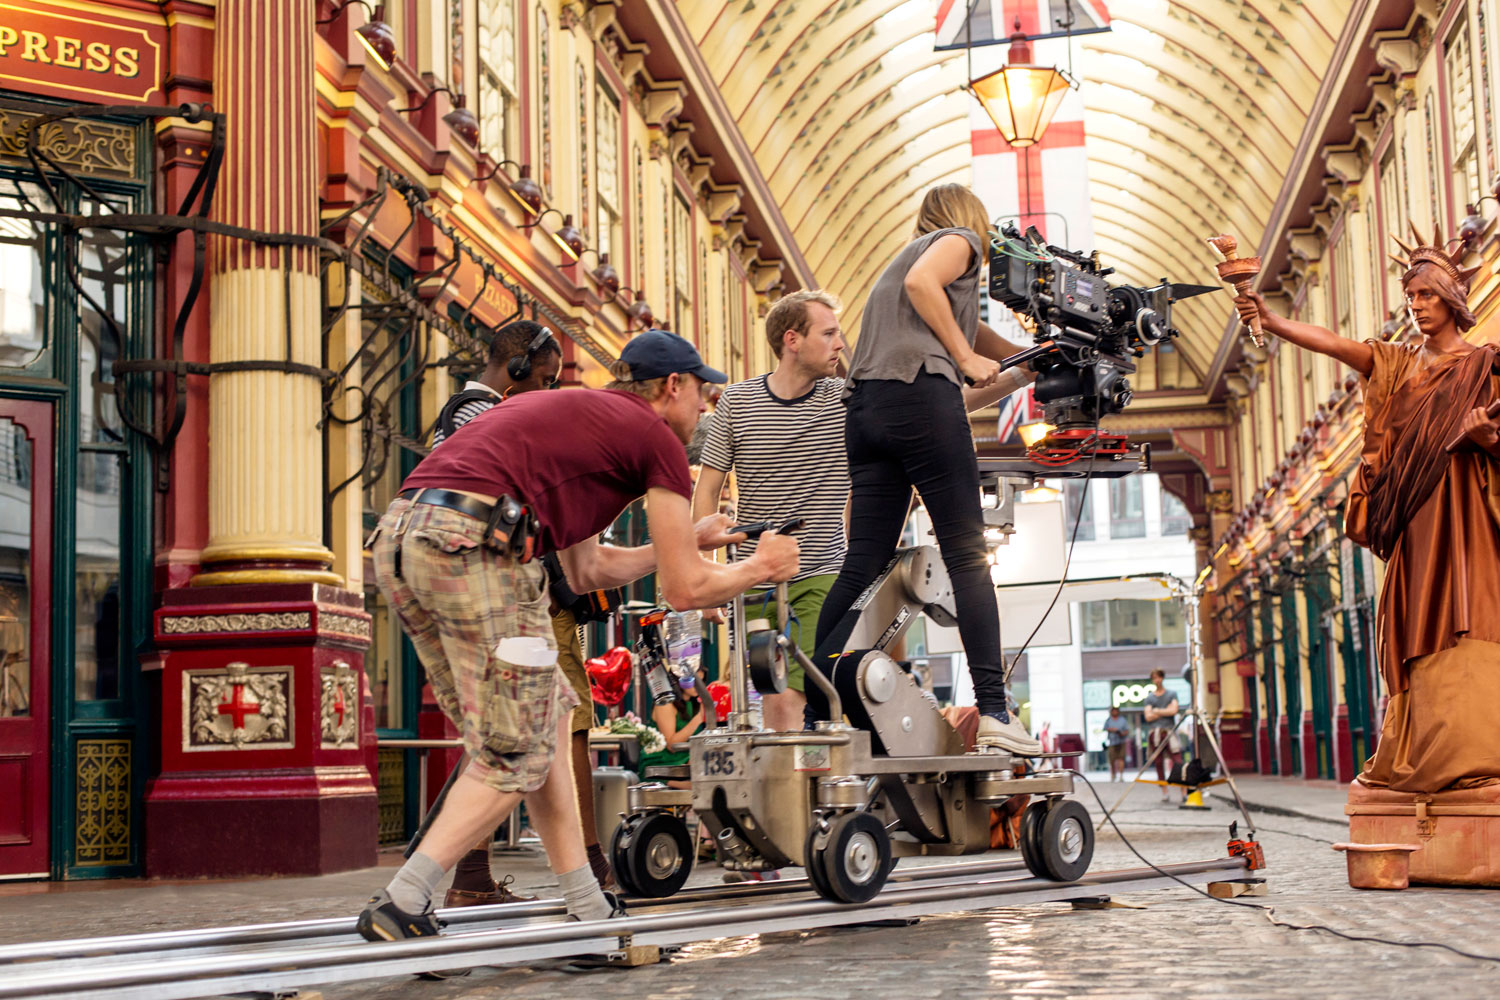 passing_by_behind_the_scenes_008_©_olivier_hess_potography